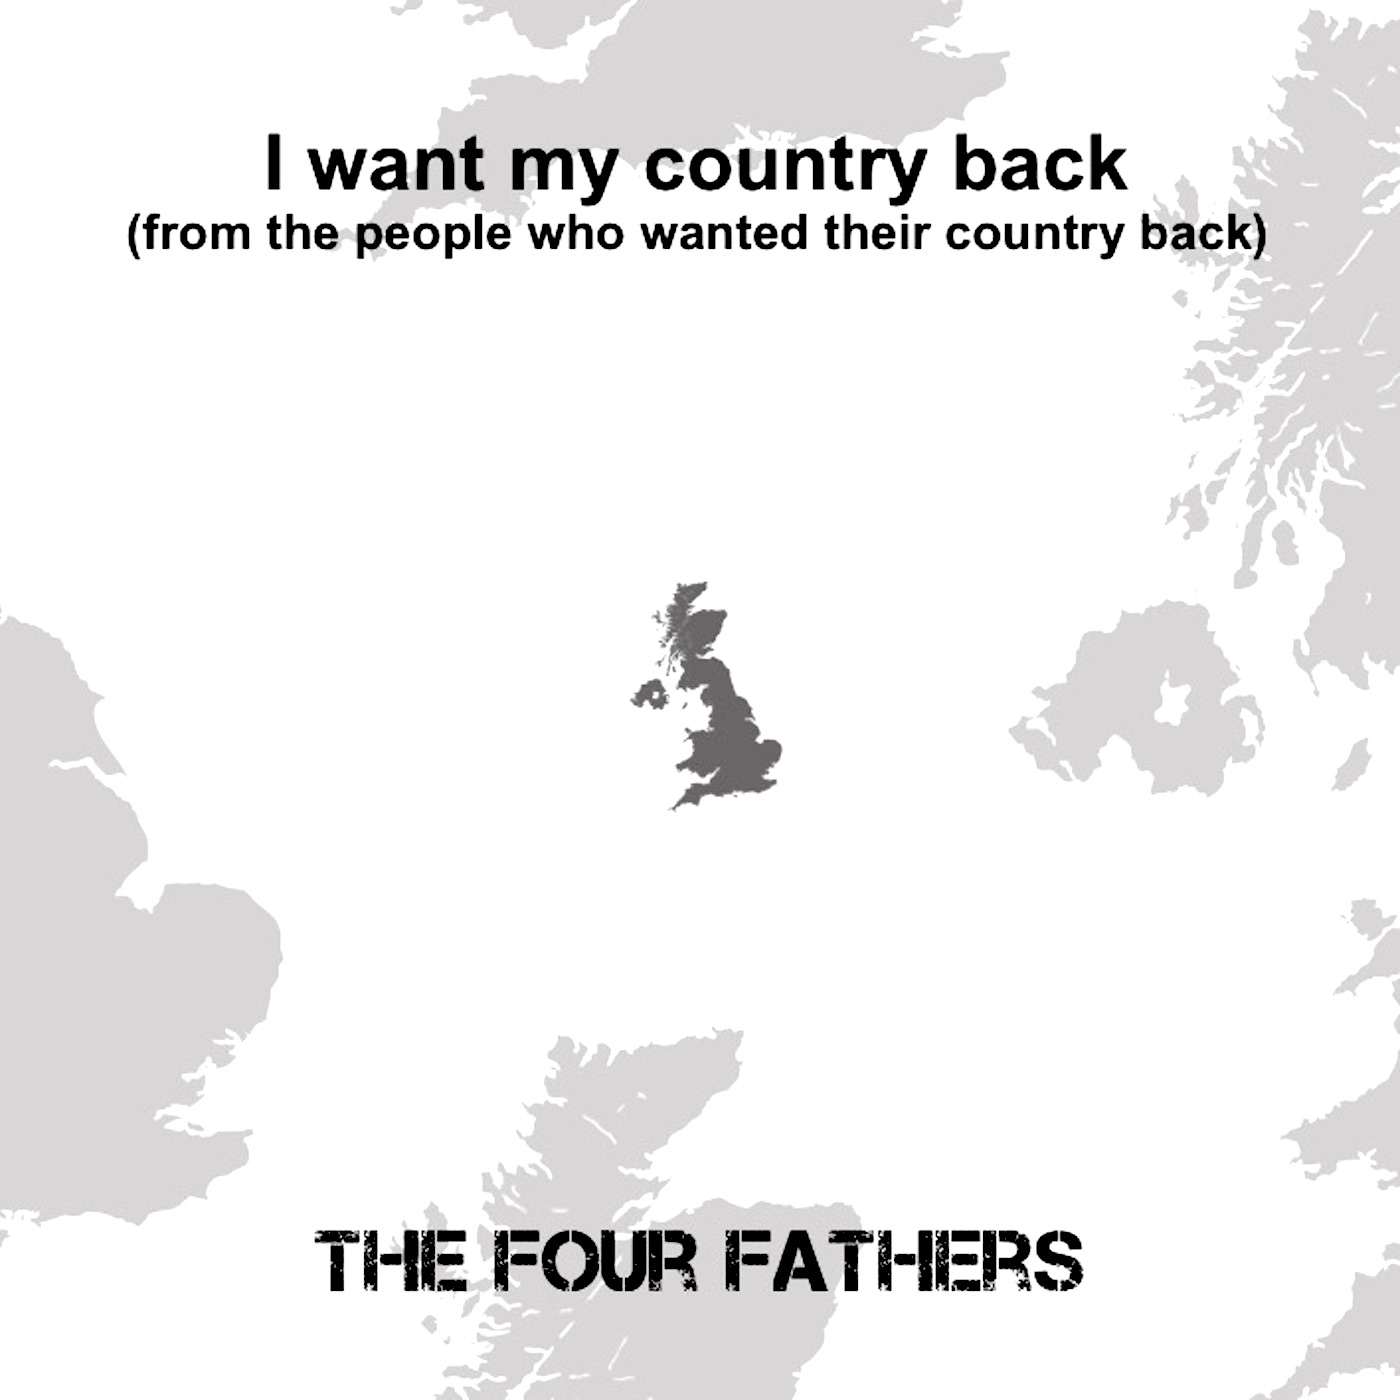 The cover of 'I Want My Country Back (From The People Who Wanted Their Country Back)' by The Four Fathers (cover image by Brendan Horstead).